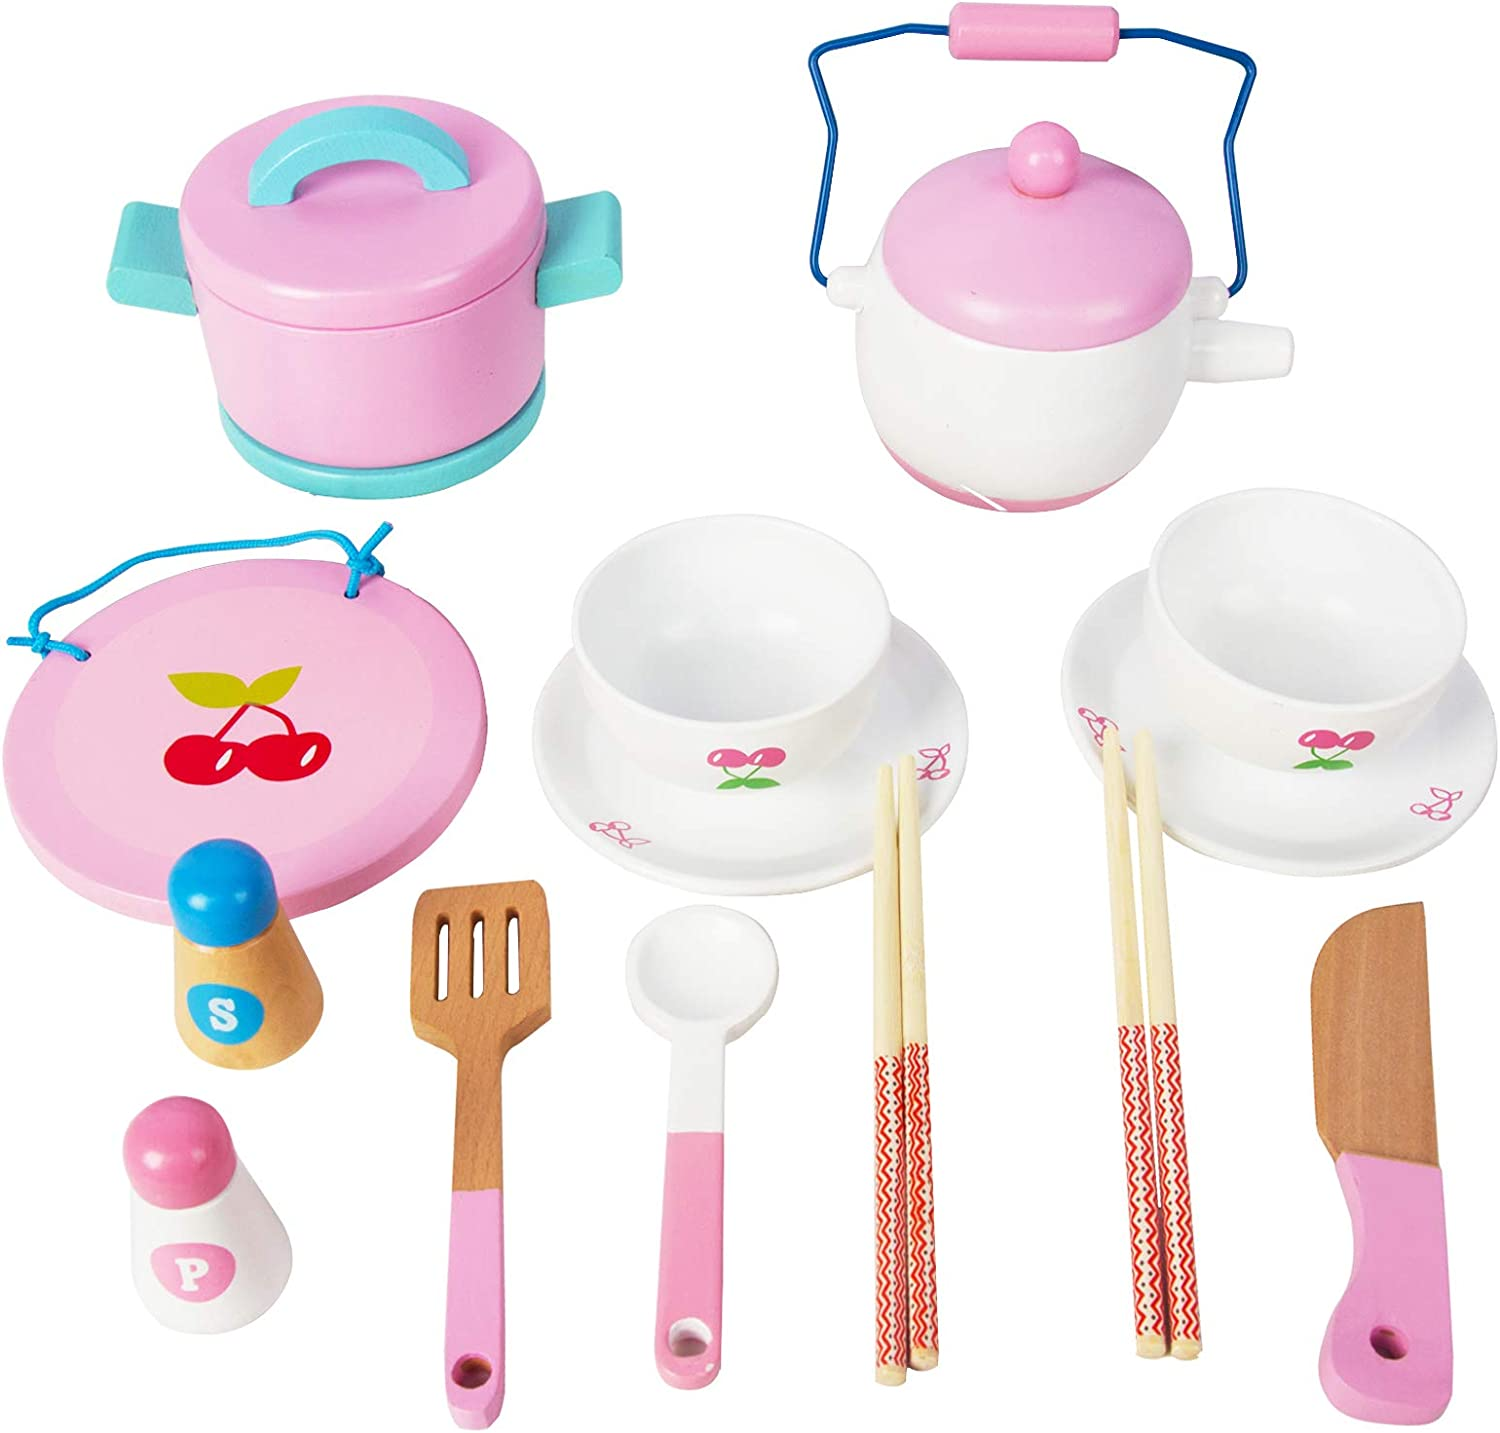 Wooden Tea Set for Little Girls , Pretend Food Play Kitchen Toy for Toddlers Great Pink Kids Tea Party Set Gift for 2 3 4 5 Year Old Girls and Boys